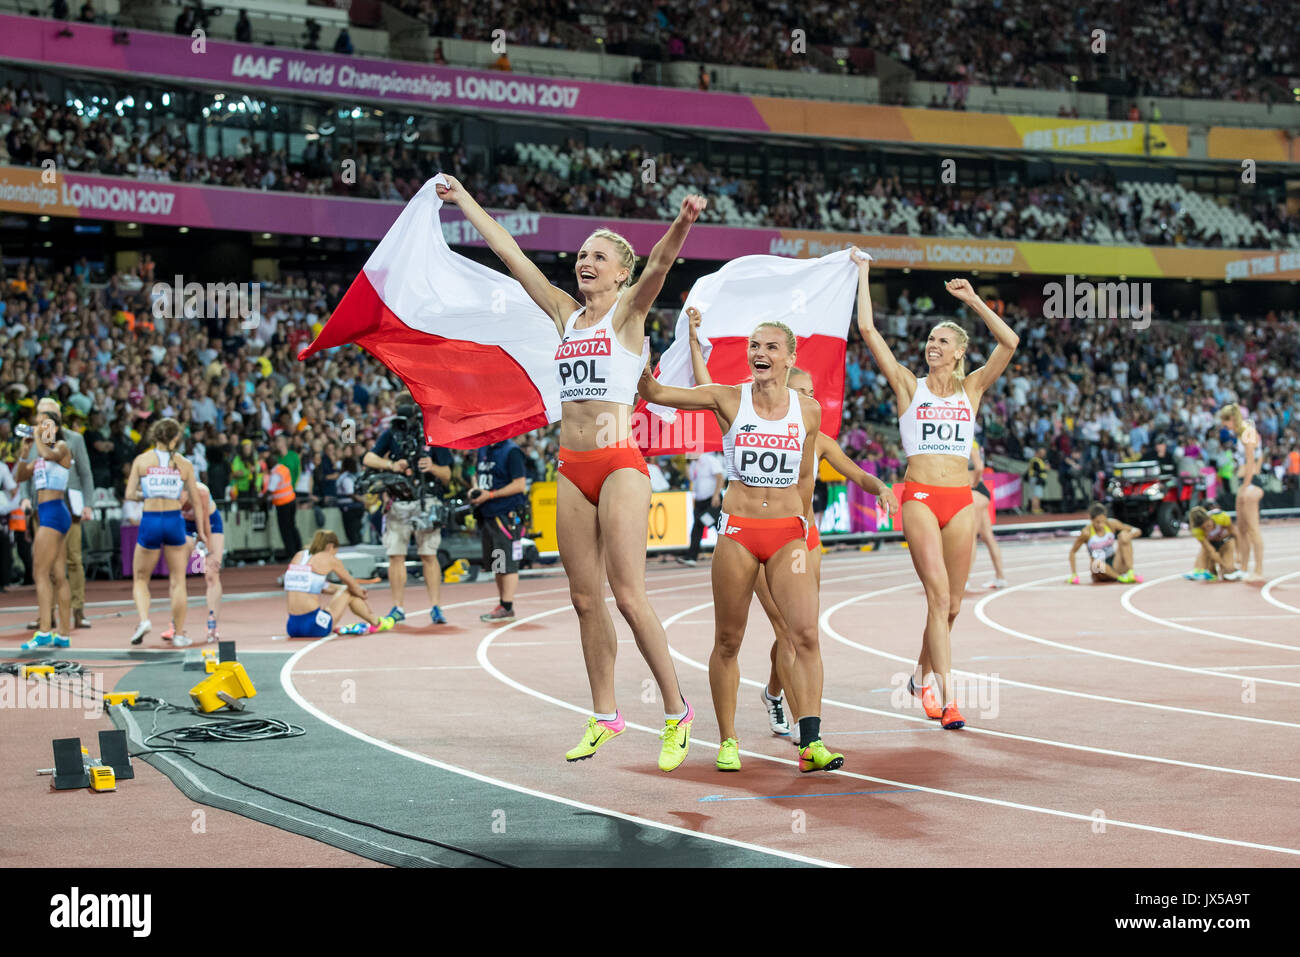 London, UK. 13th Aug, 2017. The Polish Women's 4x400 metre relay team celebrate coming 3rd to claim Bronze medals during the Final Day of the IAAF World Athletics Championships (Day 10) at the Olympic Park, London, England on 13 August 2017. Photo by Andy Rowland/PRiME Media Images. Credit: Andrew Rowland/Alamy Live News - Stock Image